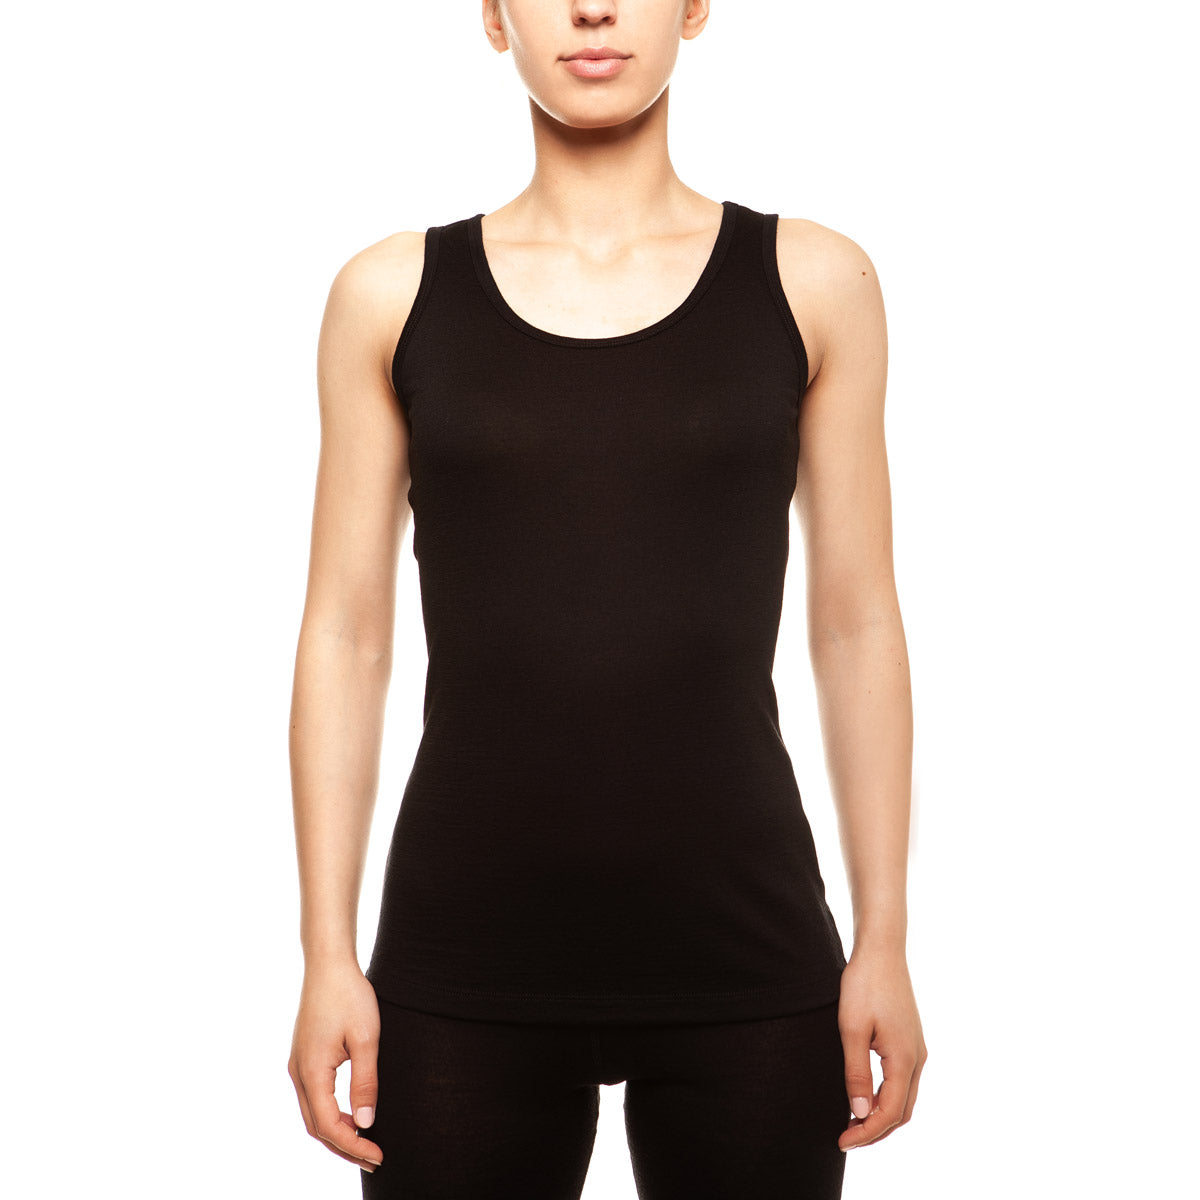 menique Women's Merino 160 Tank Top Black Color